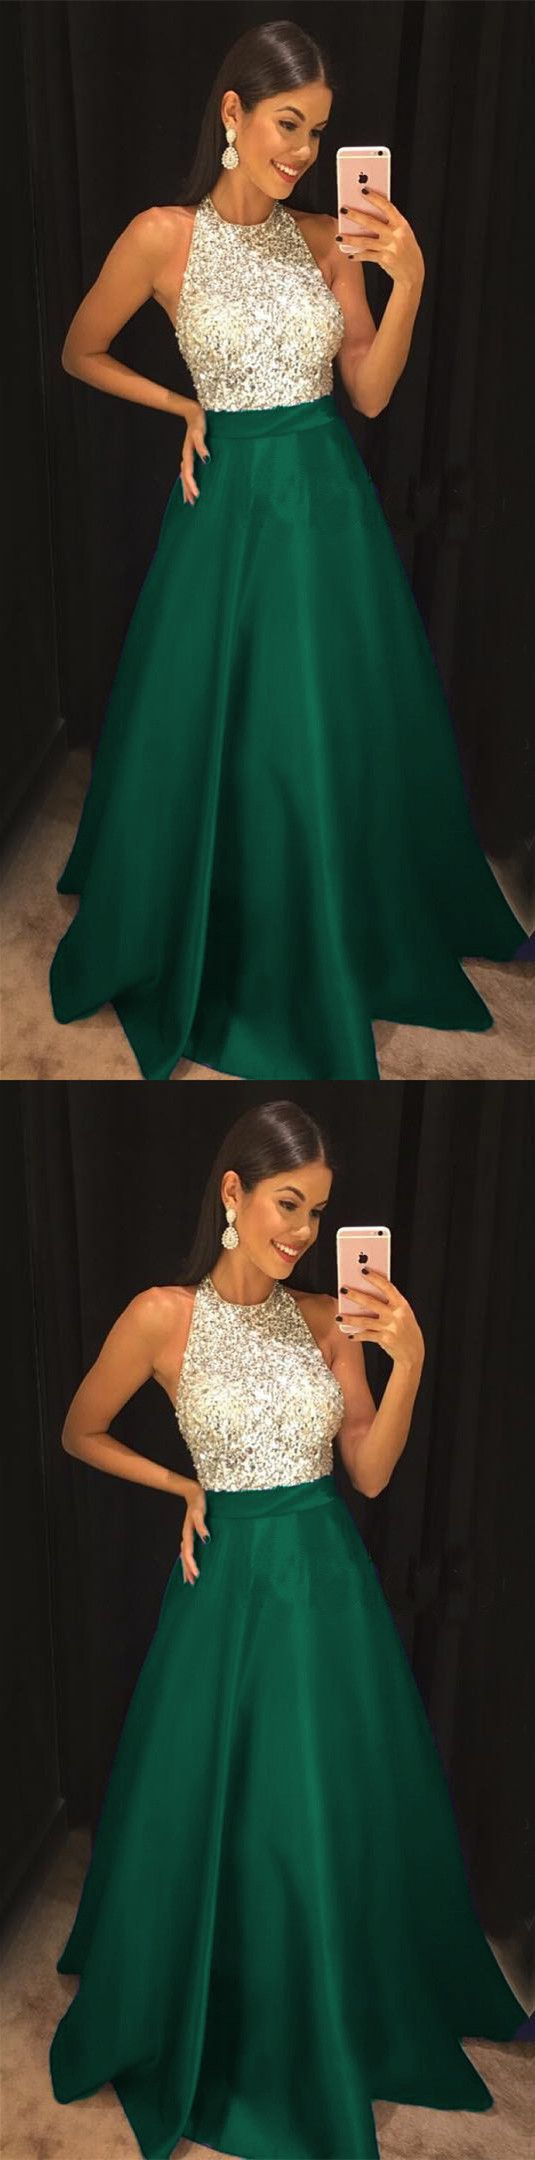 Sparkly sequins beaded halter long satin prom dresses in